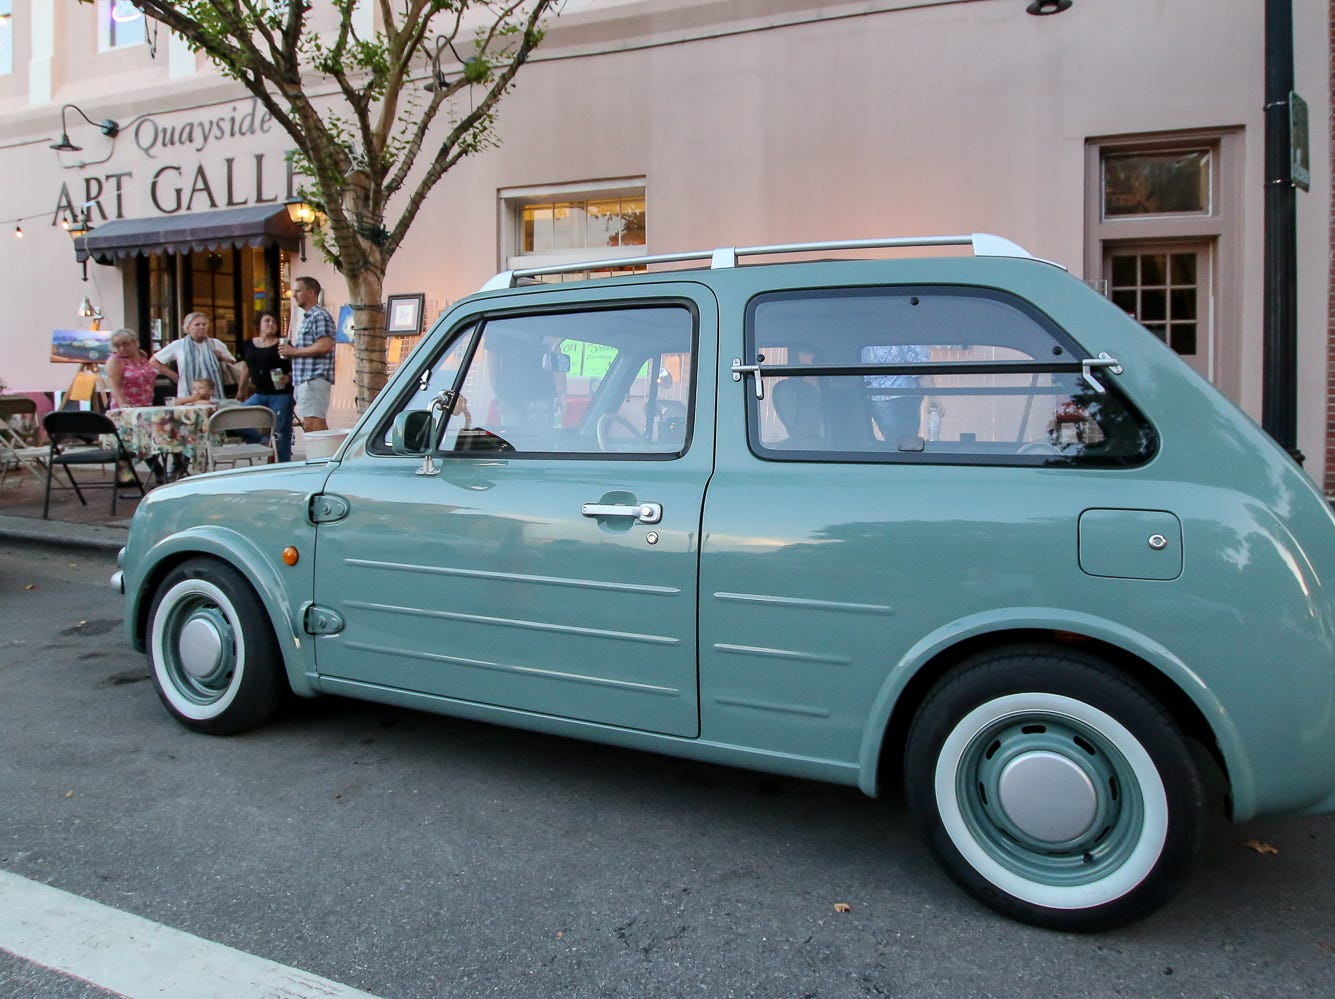 A 1989 Nissan Pao is parked on display in front of Quayside Art Gallery during Gallery Night on Friday, October 19, 2018.